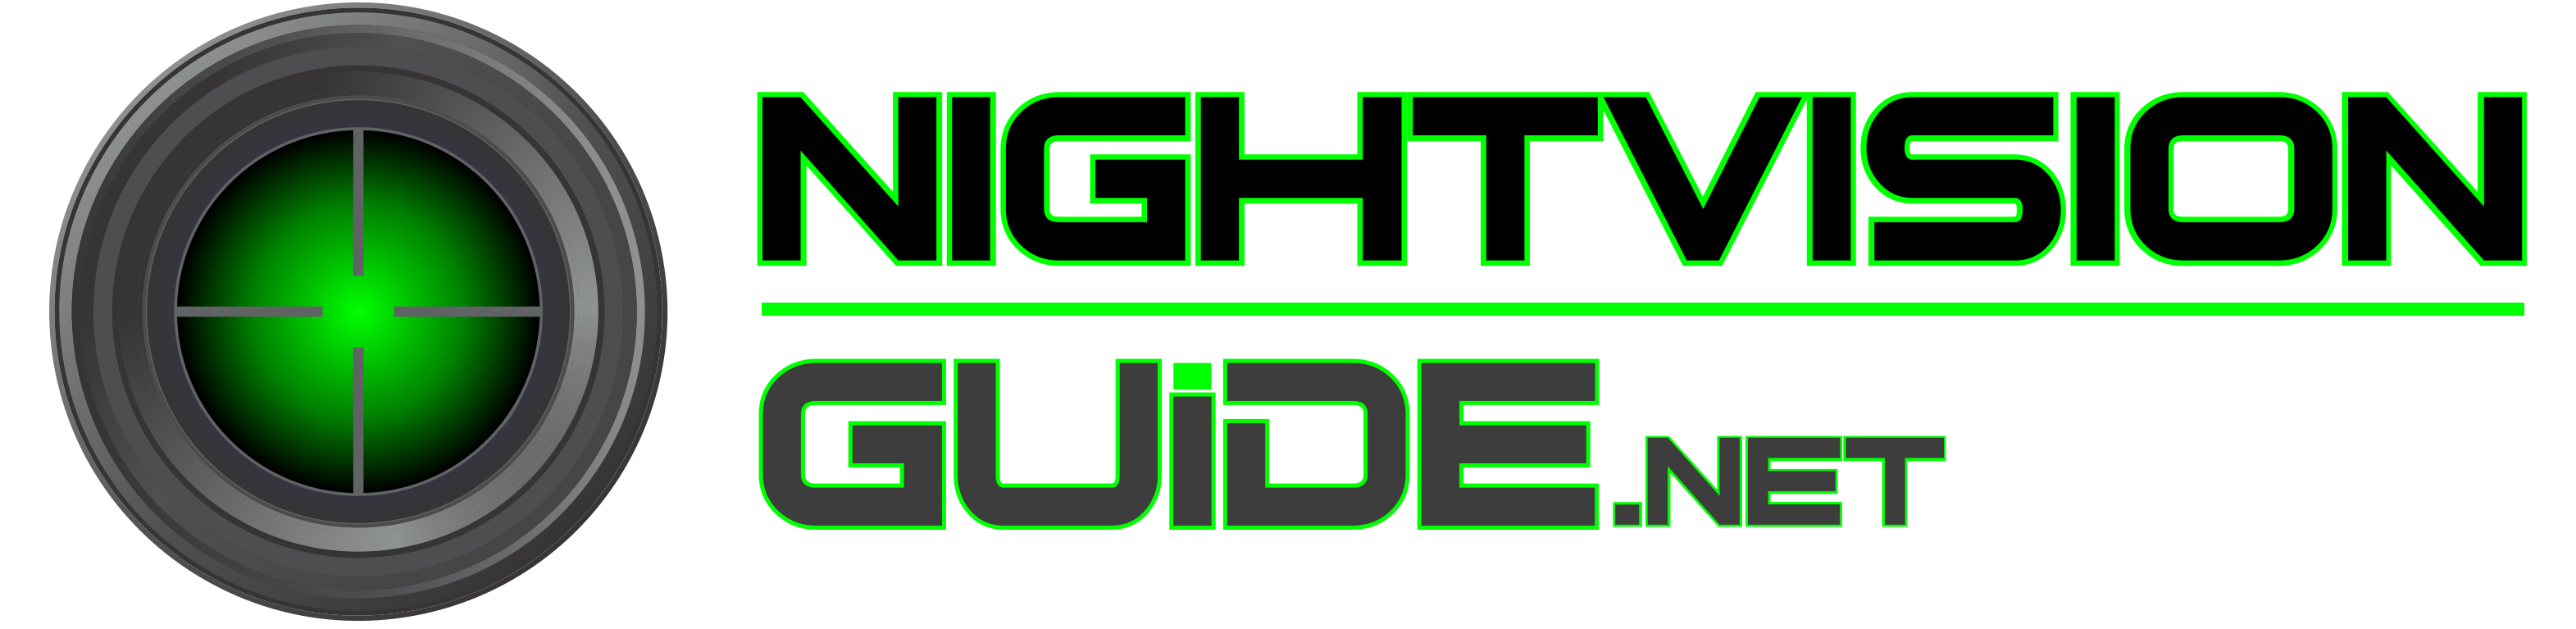 NightVisionGuide.Net